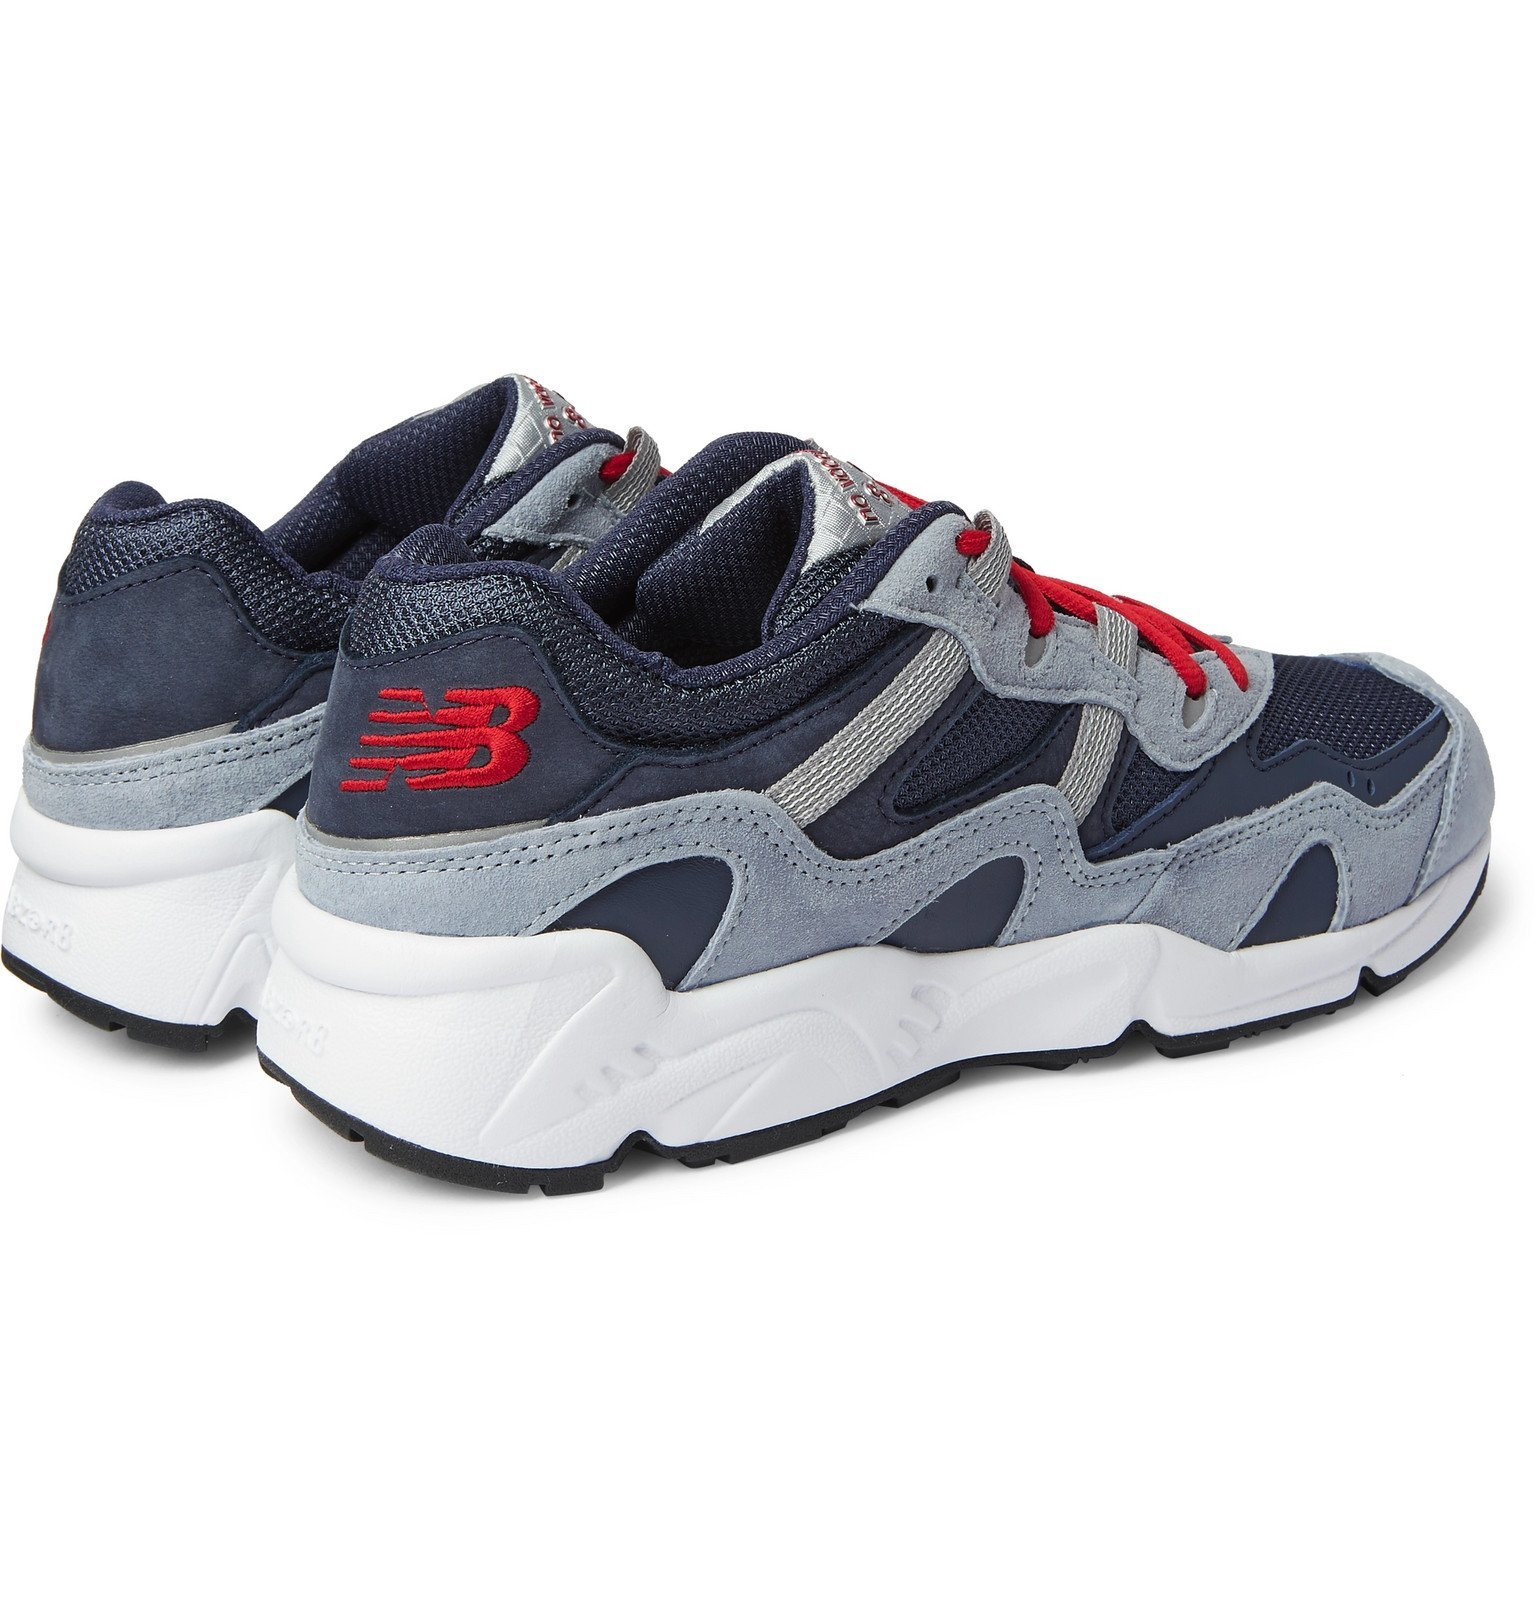 New Balance - No Vacancy Inn ML850 Suede and Leather-Trimmed Mesh Sneakers - Blue